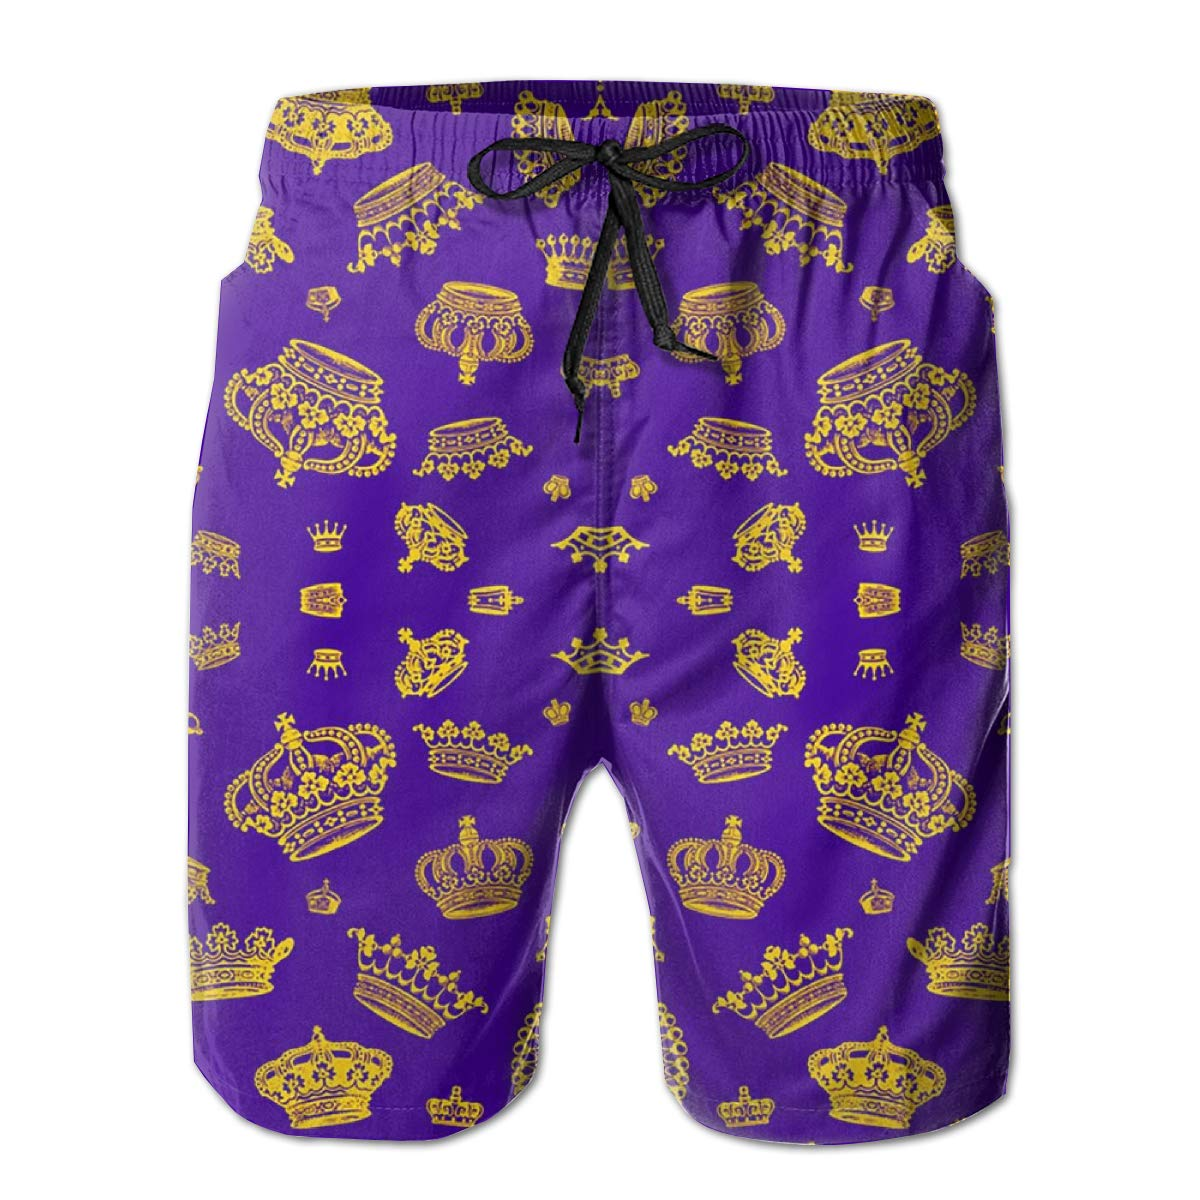 Men's Shorts Swim Trunks - Royal Crown Purple Quick Dry Board Shorts with Elastic Waist Drawstring for Summer Beach Surfing Running Volleyball Games